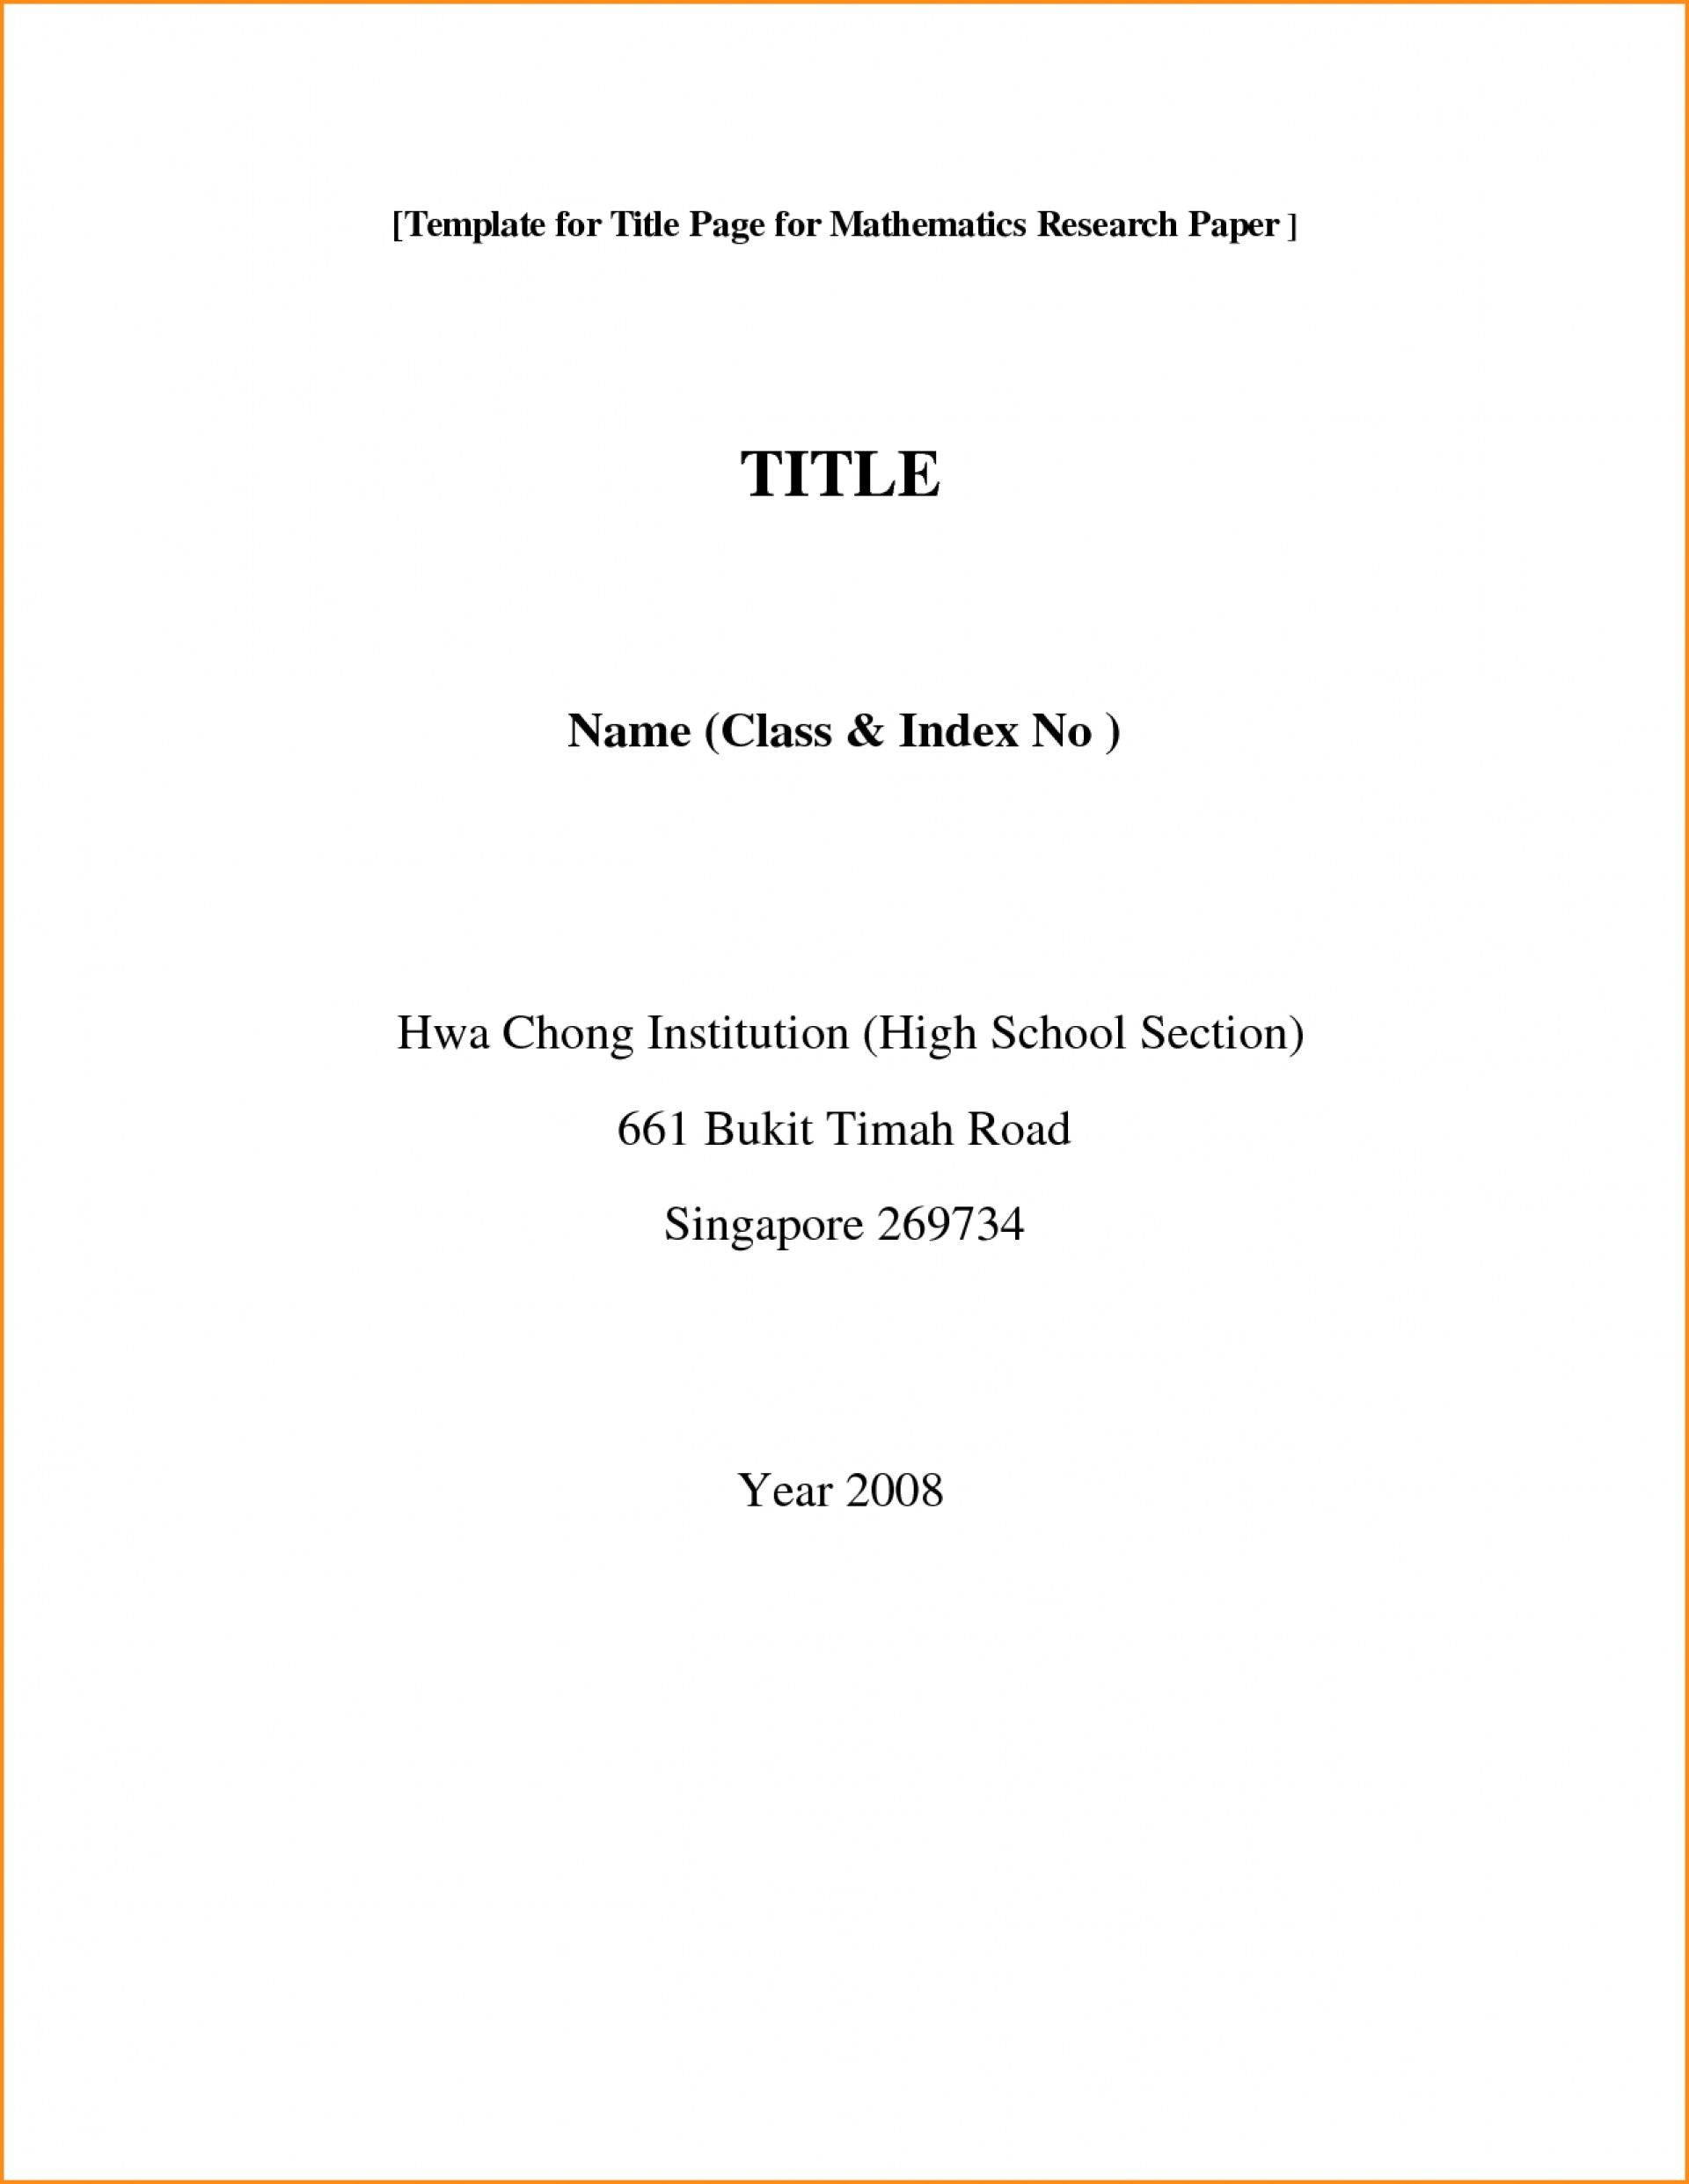 019 Collection Of Solutions Front Page Research Paper Format Simple Apa For Title Unusual Template Doc Google Docs 1920